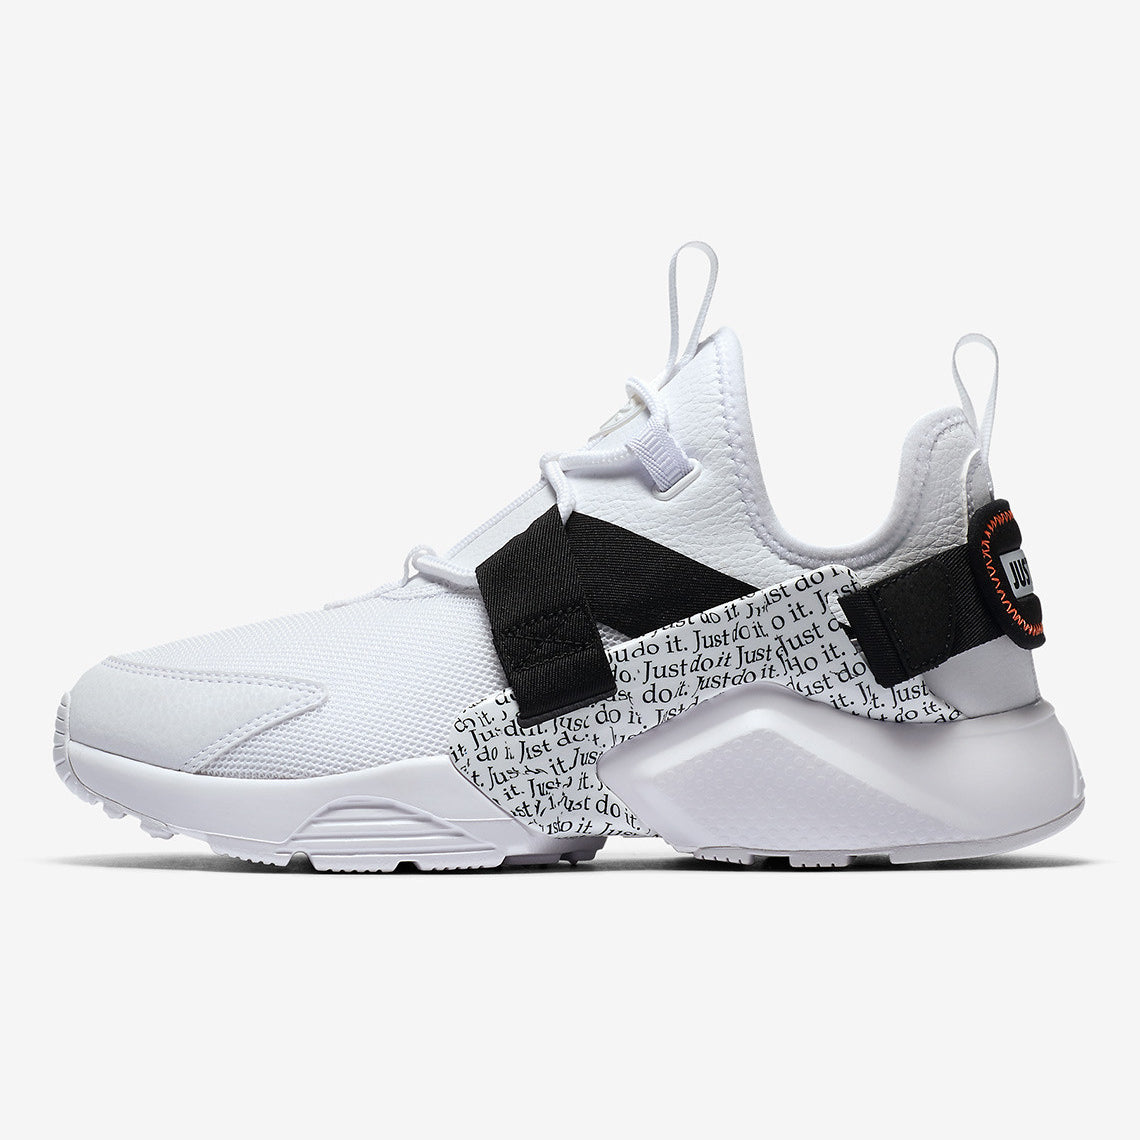 best loved a3023 a2ae9 Nike Wmns AIR HUARACHE CITY LOW PRM Just Do It Pack WHITE WHITE,BLACK,TOTAL  ORANGE ...